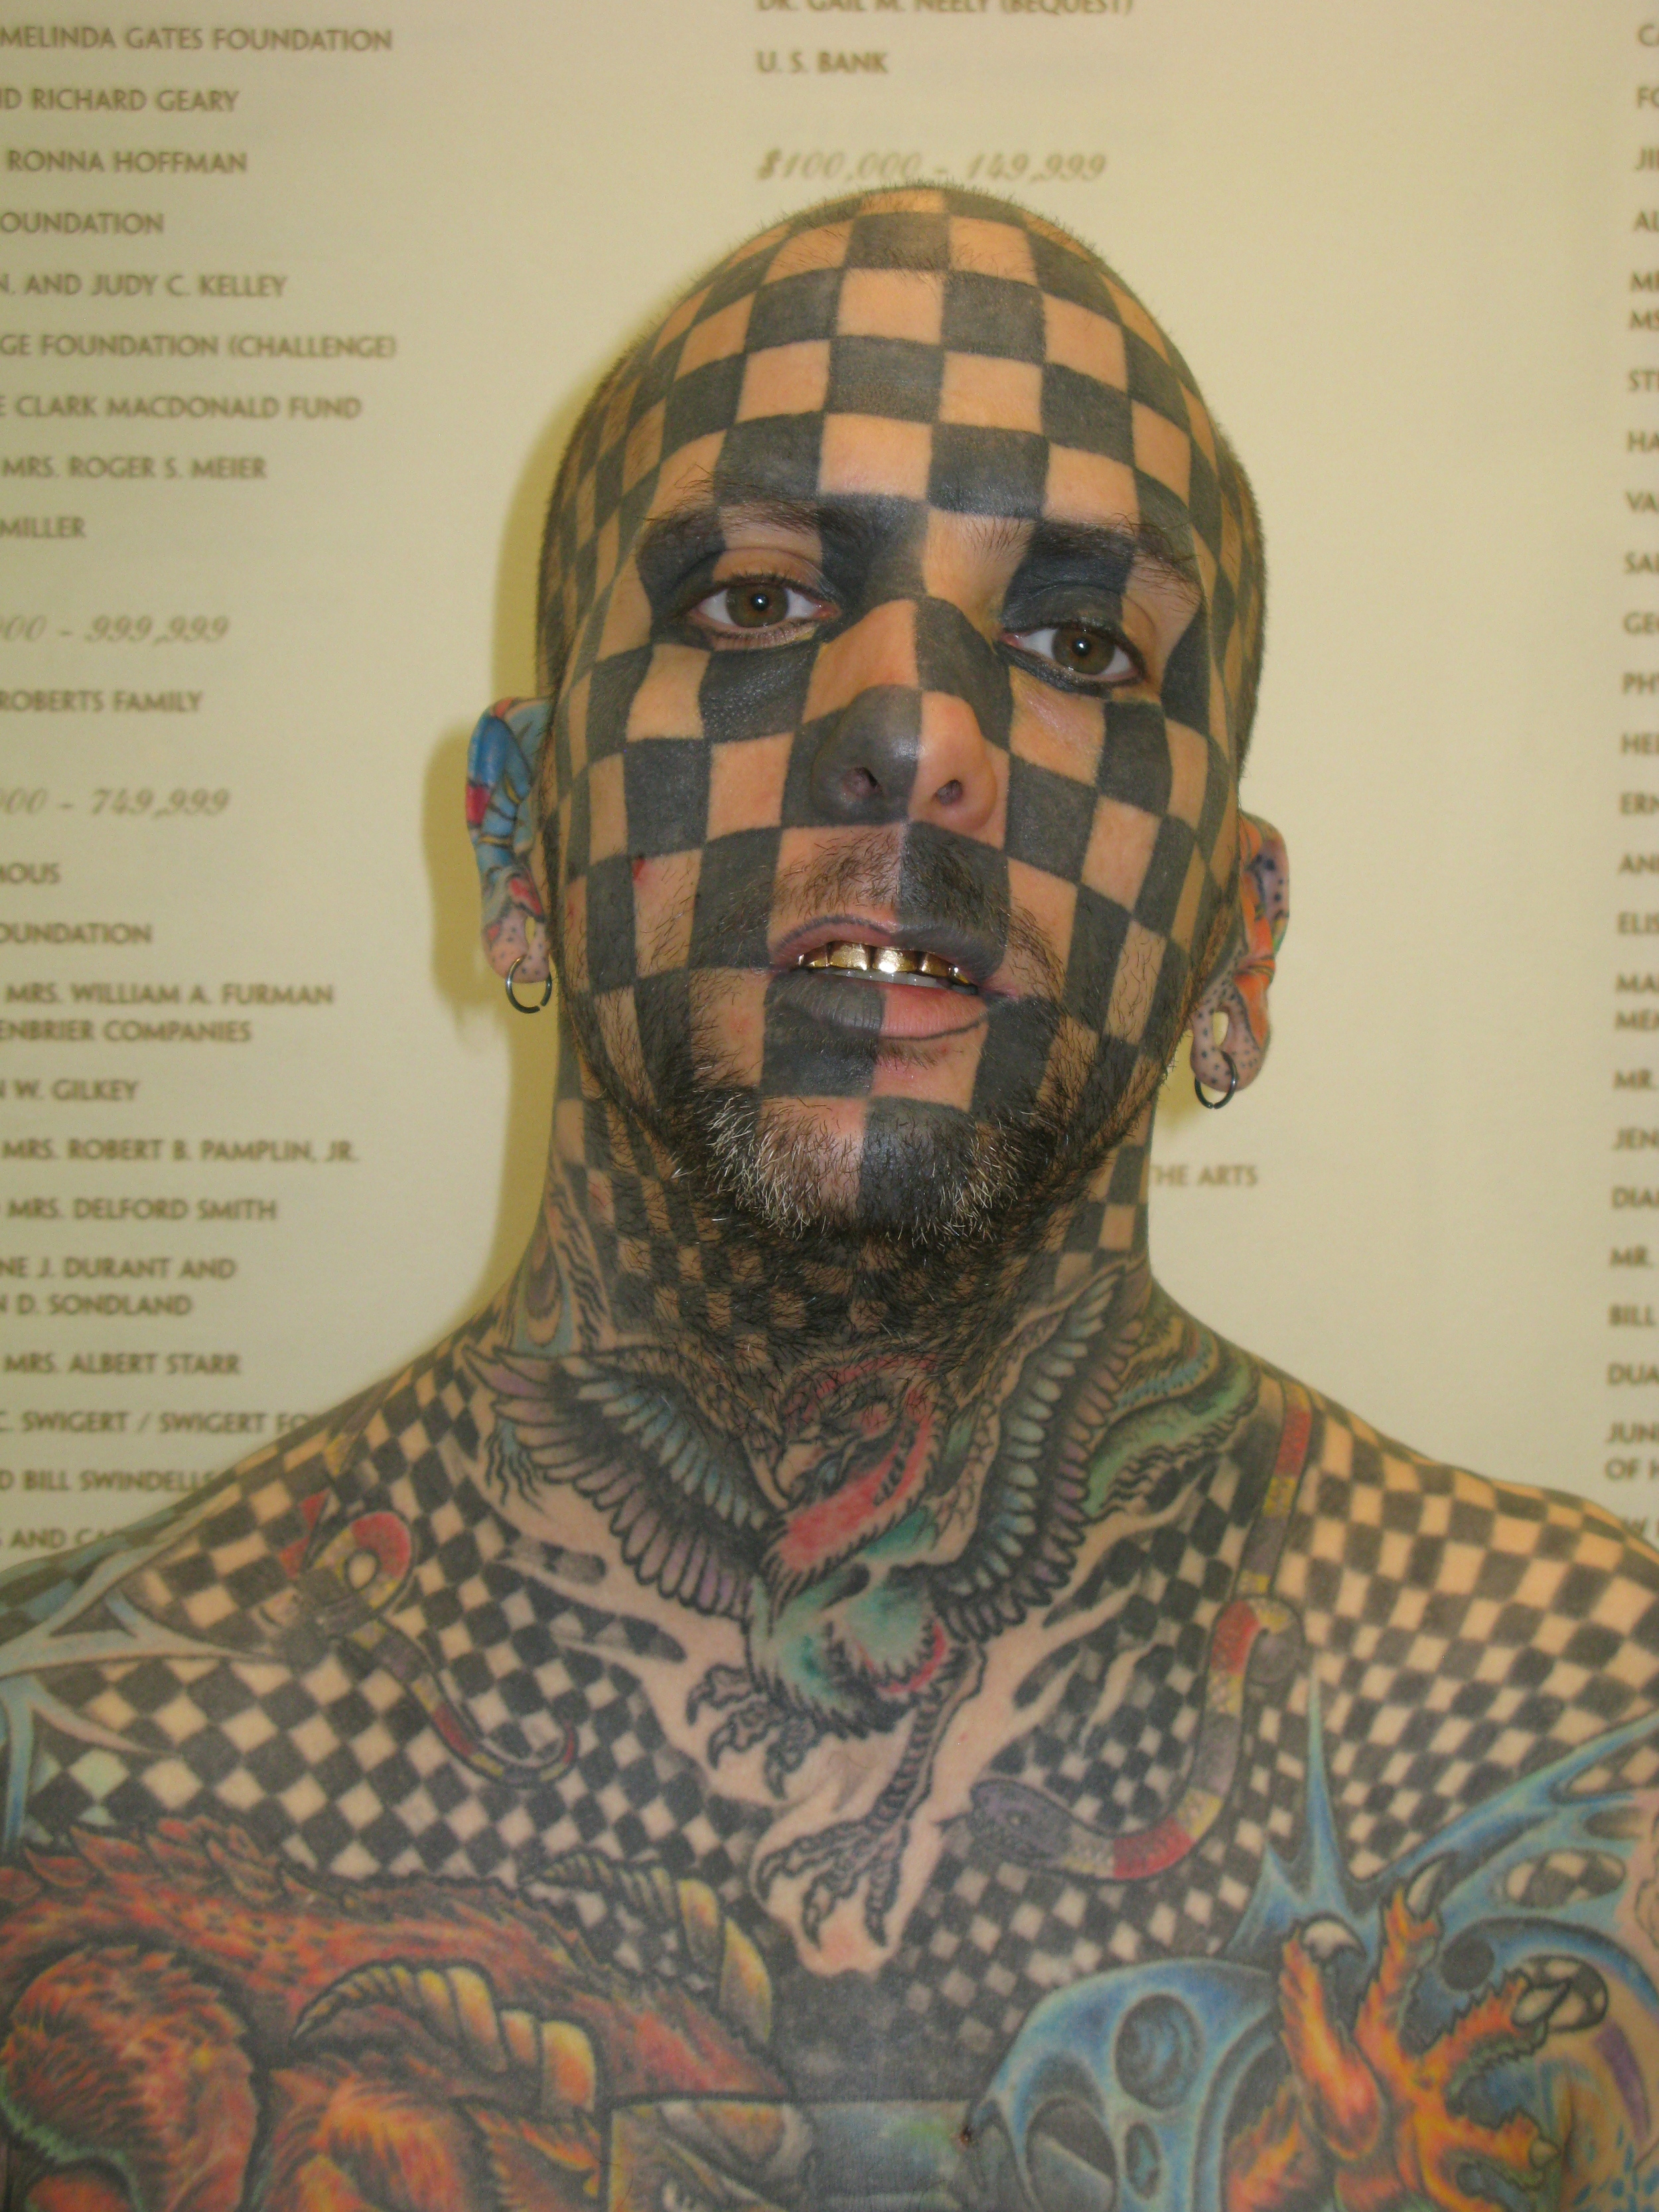 2010, Man in Portland at a tatoo art show.  I asked if I could take a few photos of him and he agreed.